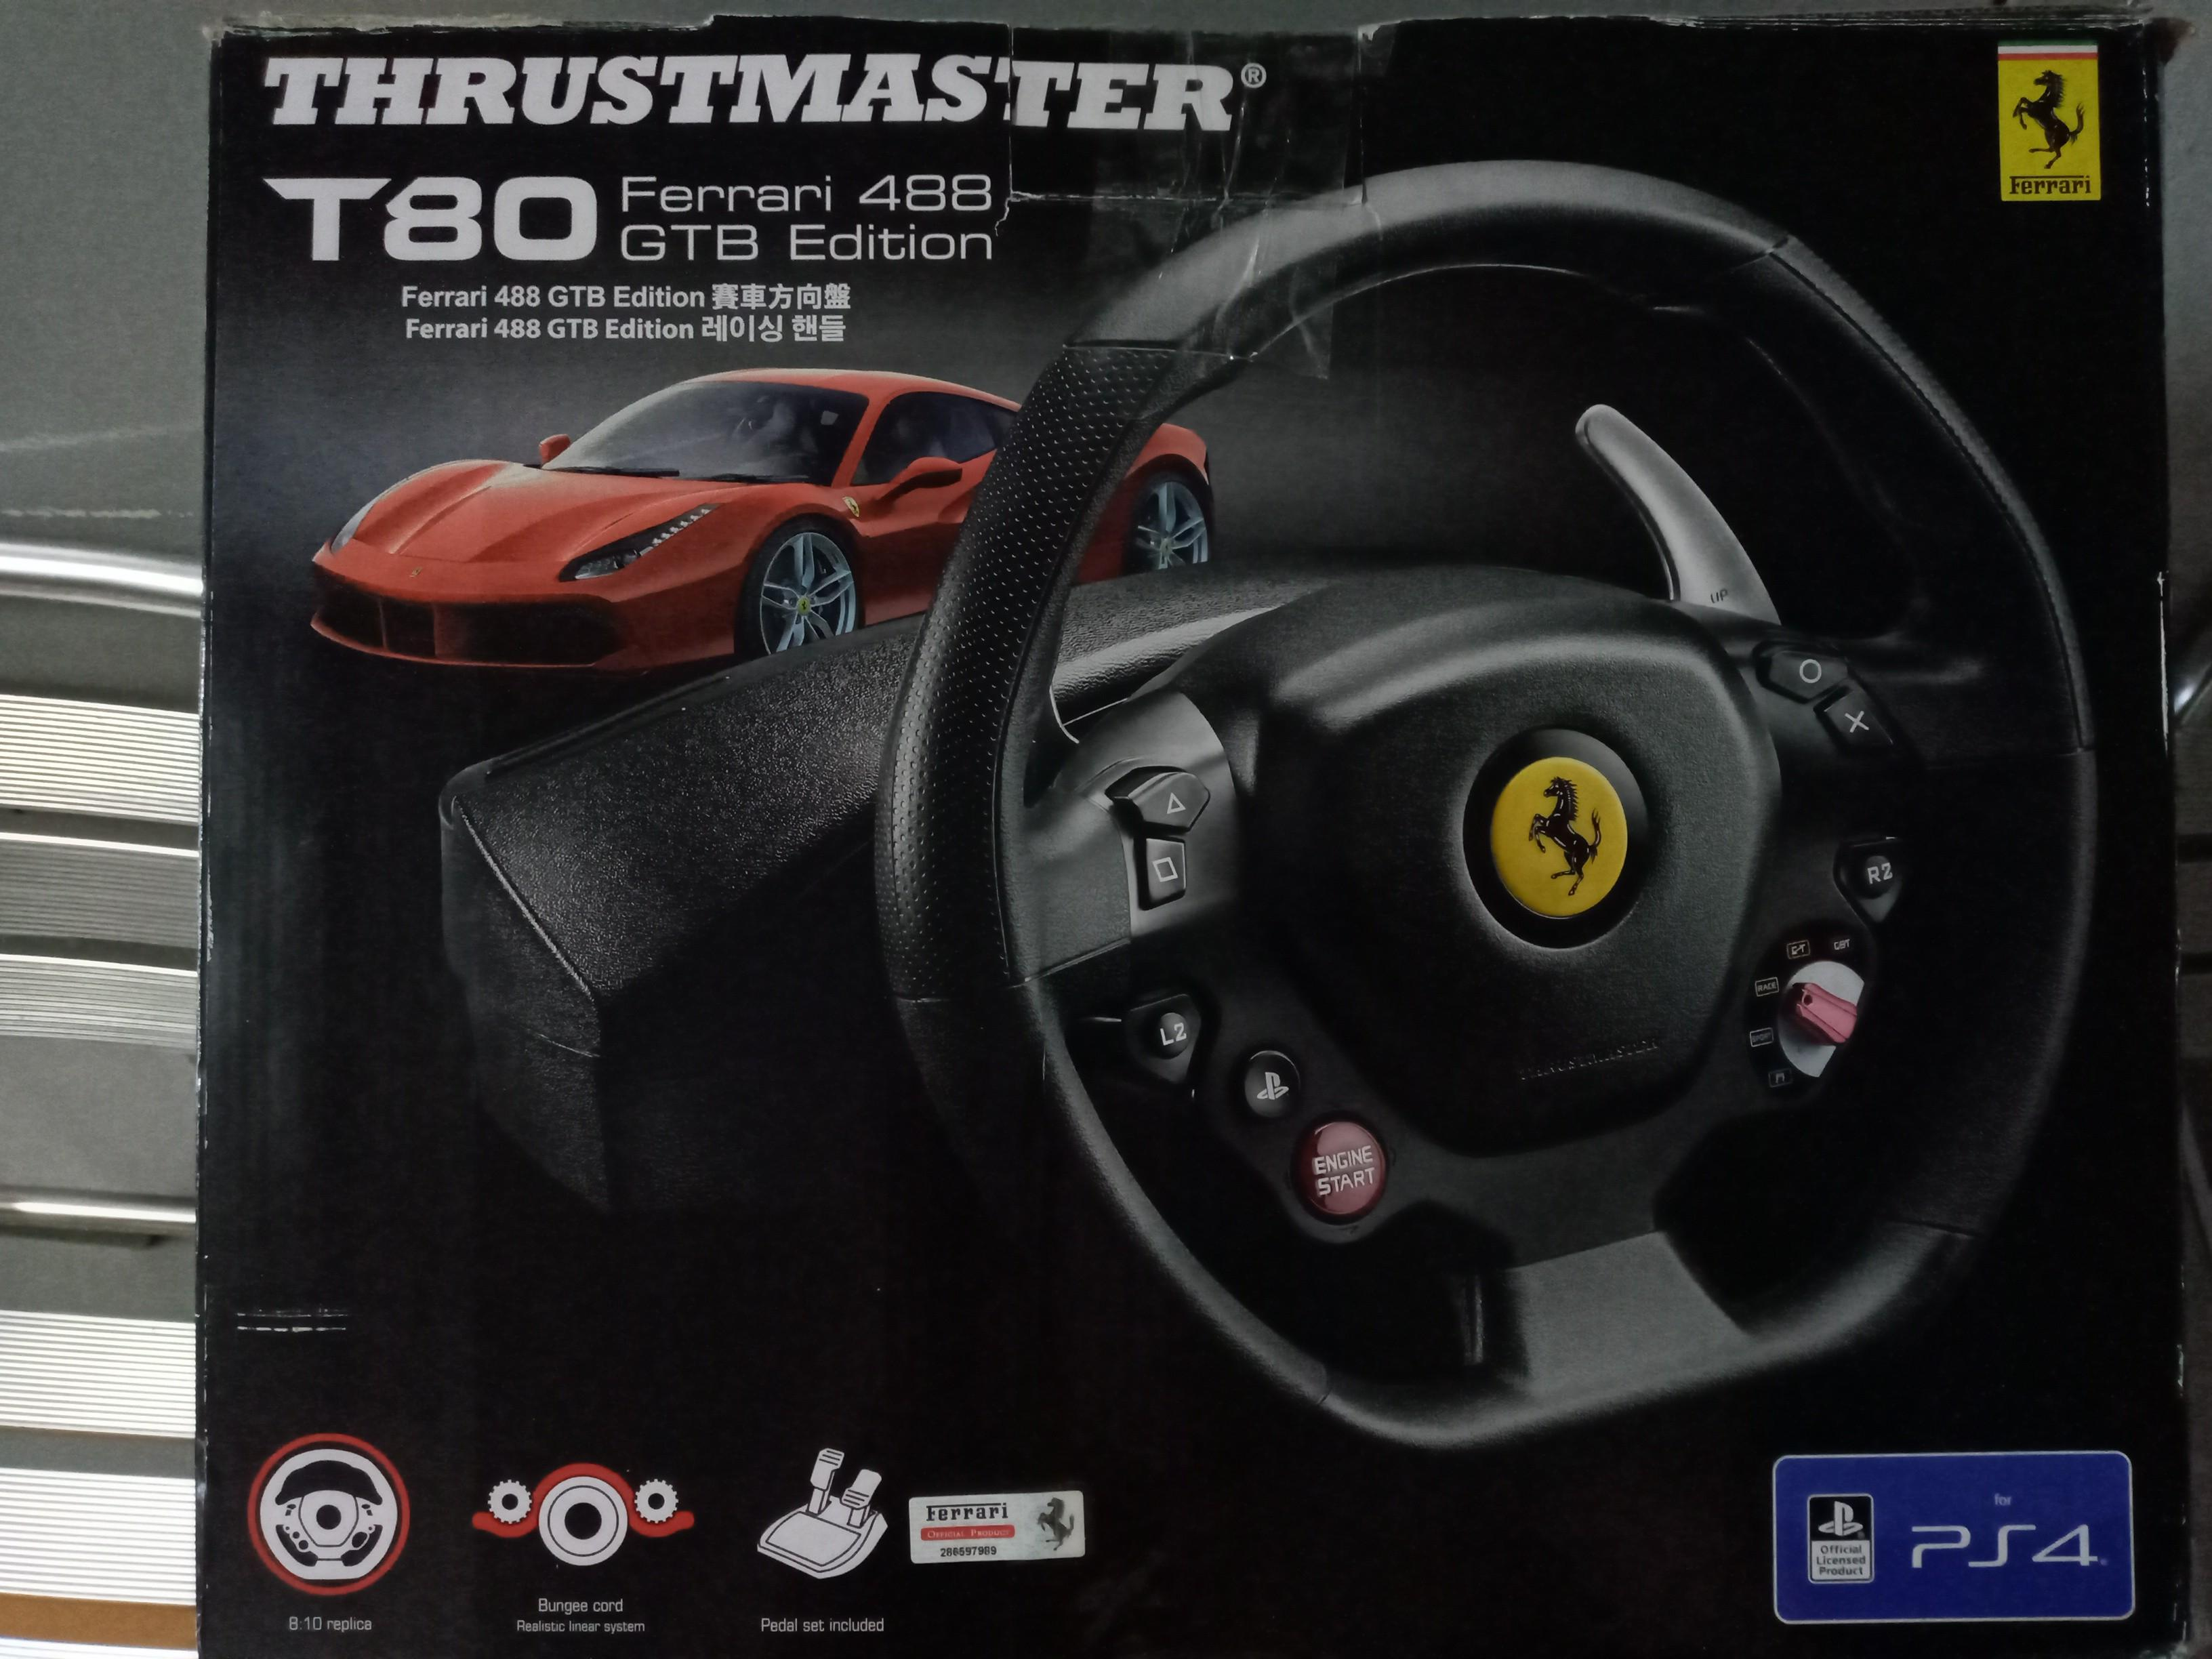 T80 Thrustmaster Steering Wheel Ps4 Ferrari Type Toys Games Video Gaming Gaming Accessories On Carousell